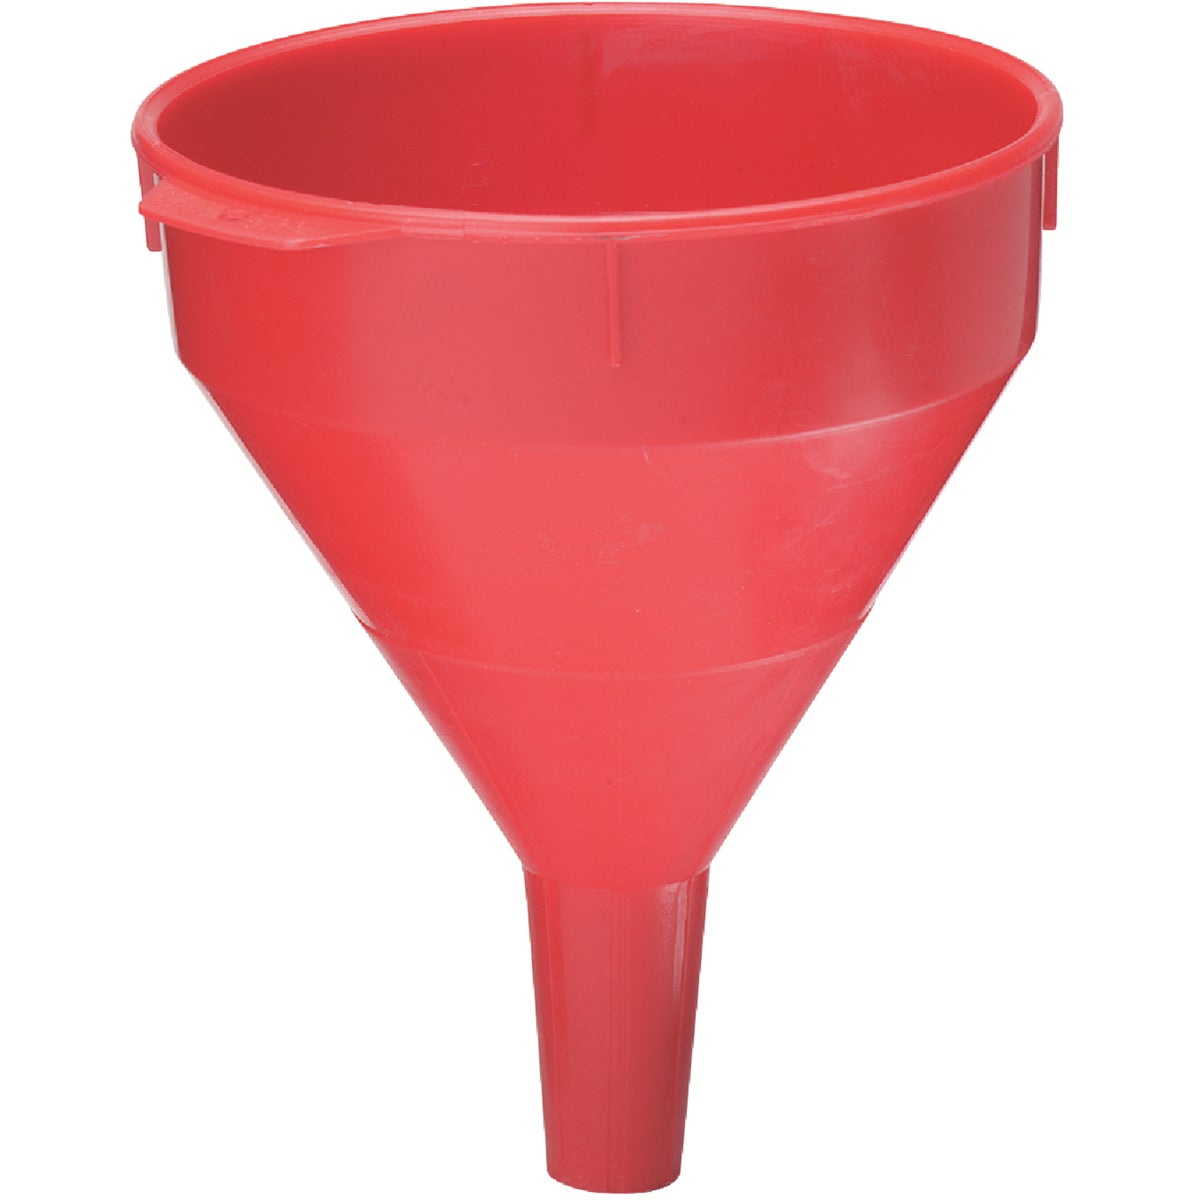 1 PINT PLASTIC FUNNEL